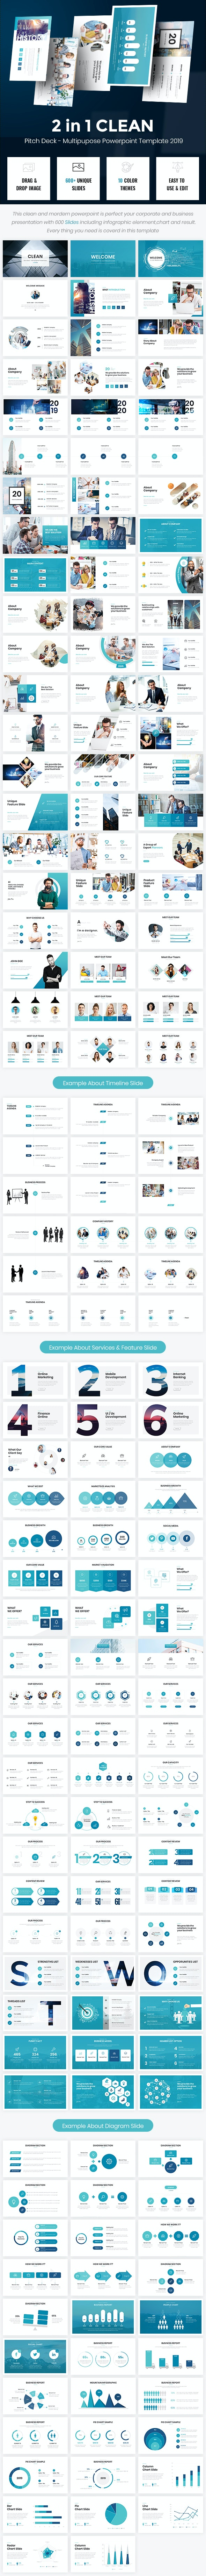 2 in 1 Clean Pitch Deck - Multipurpose Powerpoint 2019 - PowerPoint Templates Presentation Templates